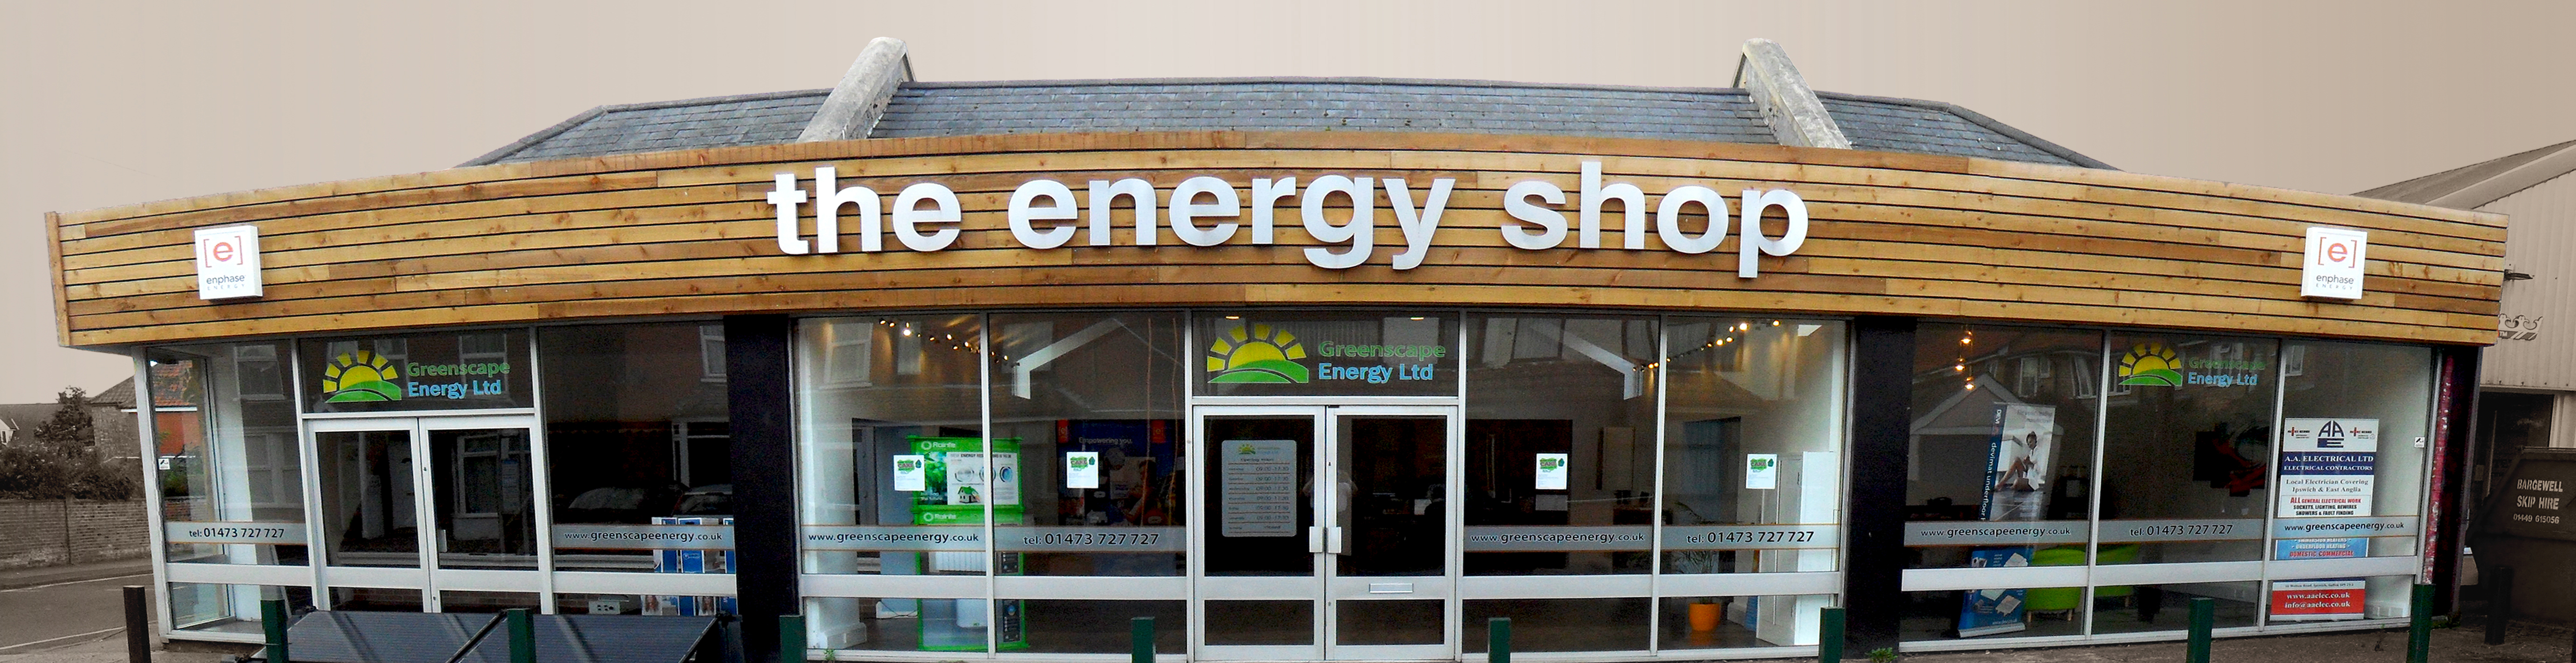 Image of The Energy Shop, Ipswich, Suffolk. The showroom for Greenscape Energy